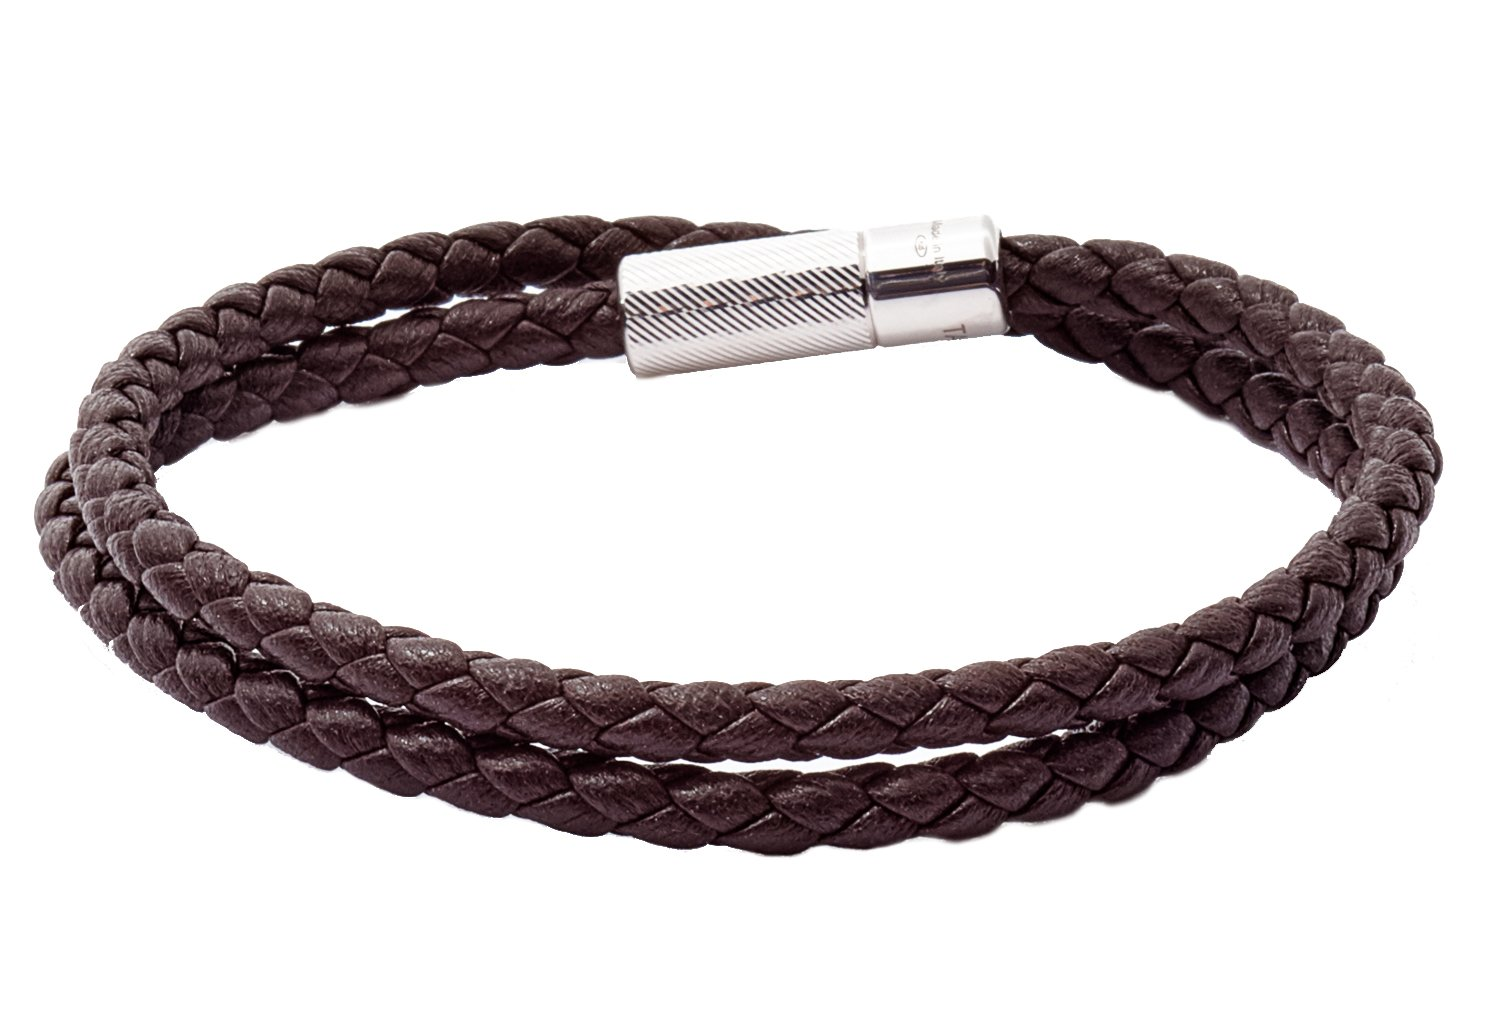 Tateossian POP Rigato Double Wrap Italian Leather Bracelet - Dark Brown, Large 41cm